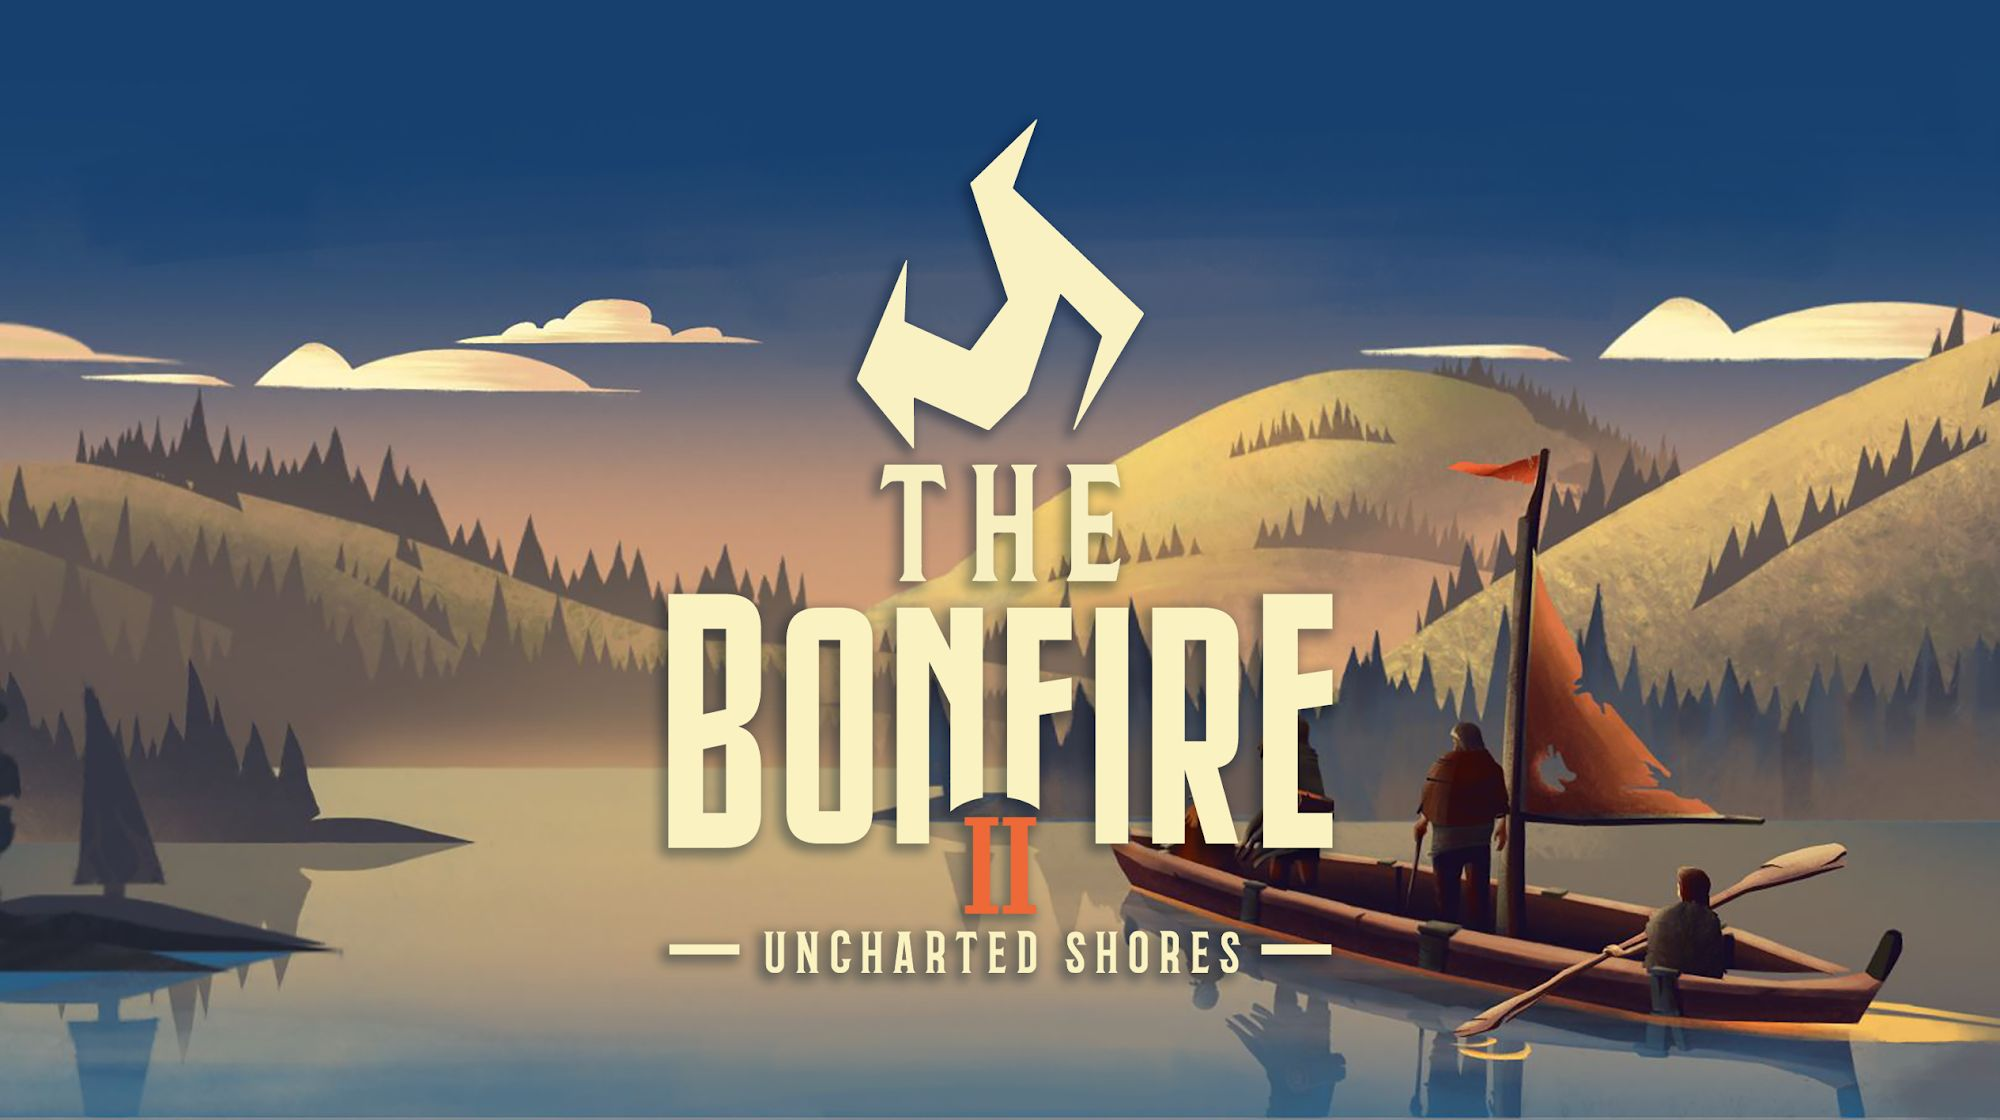 The Bonfire 2: Uncharted Shores Full Version - IAP screenshot 1